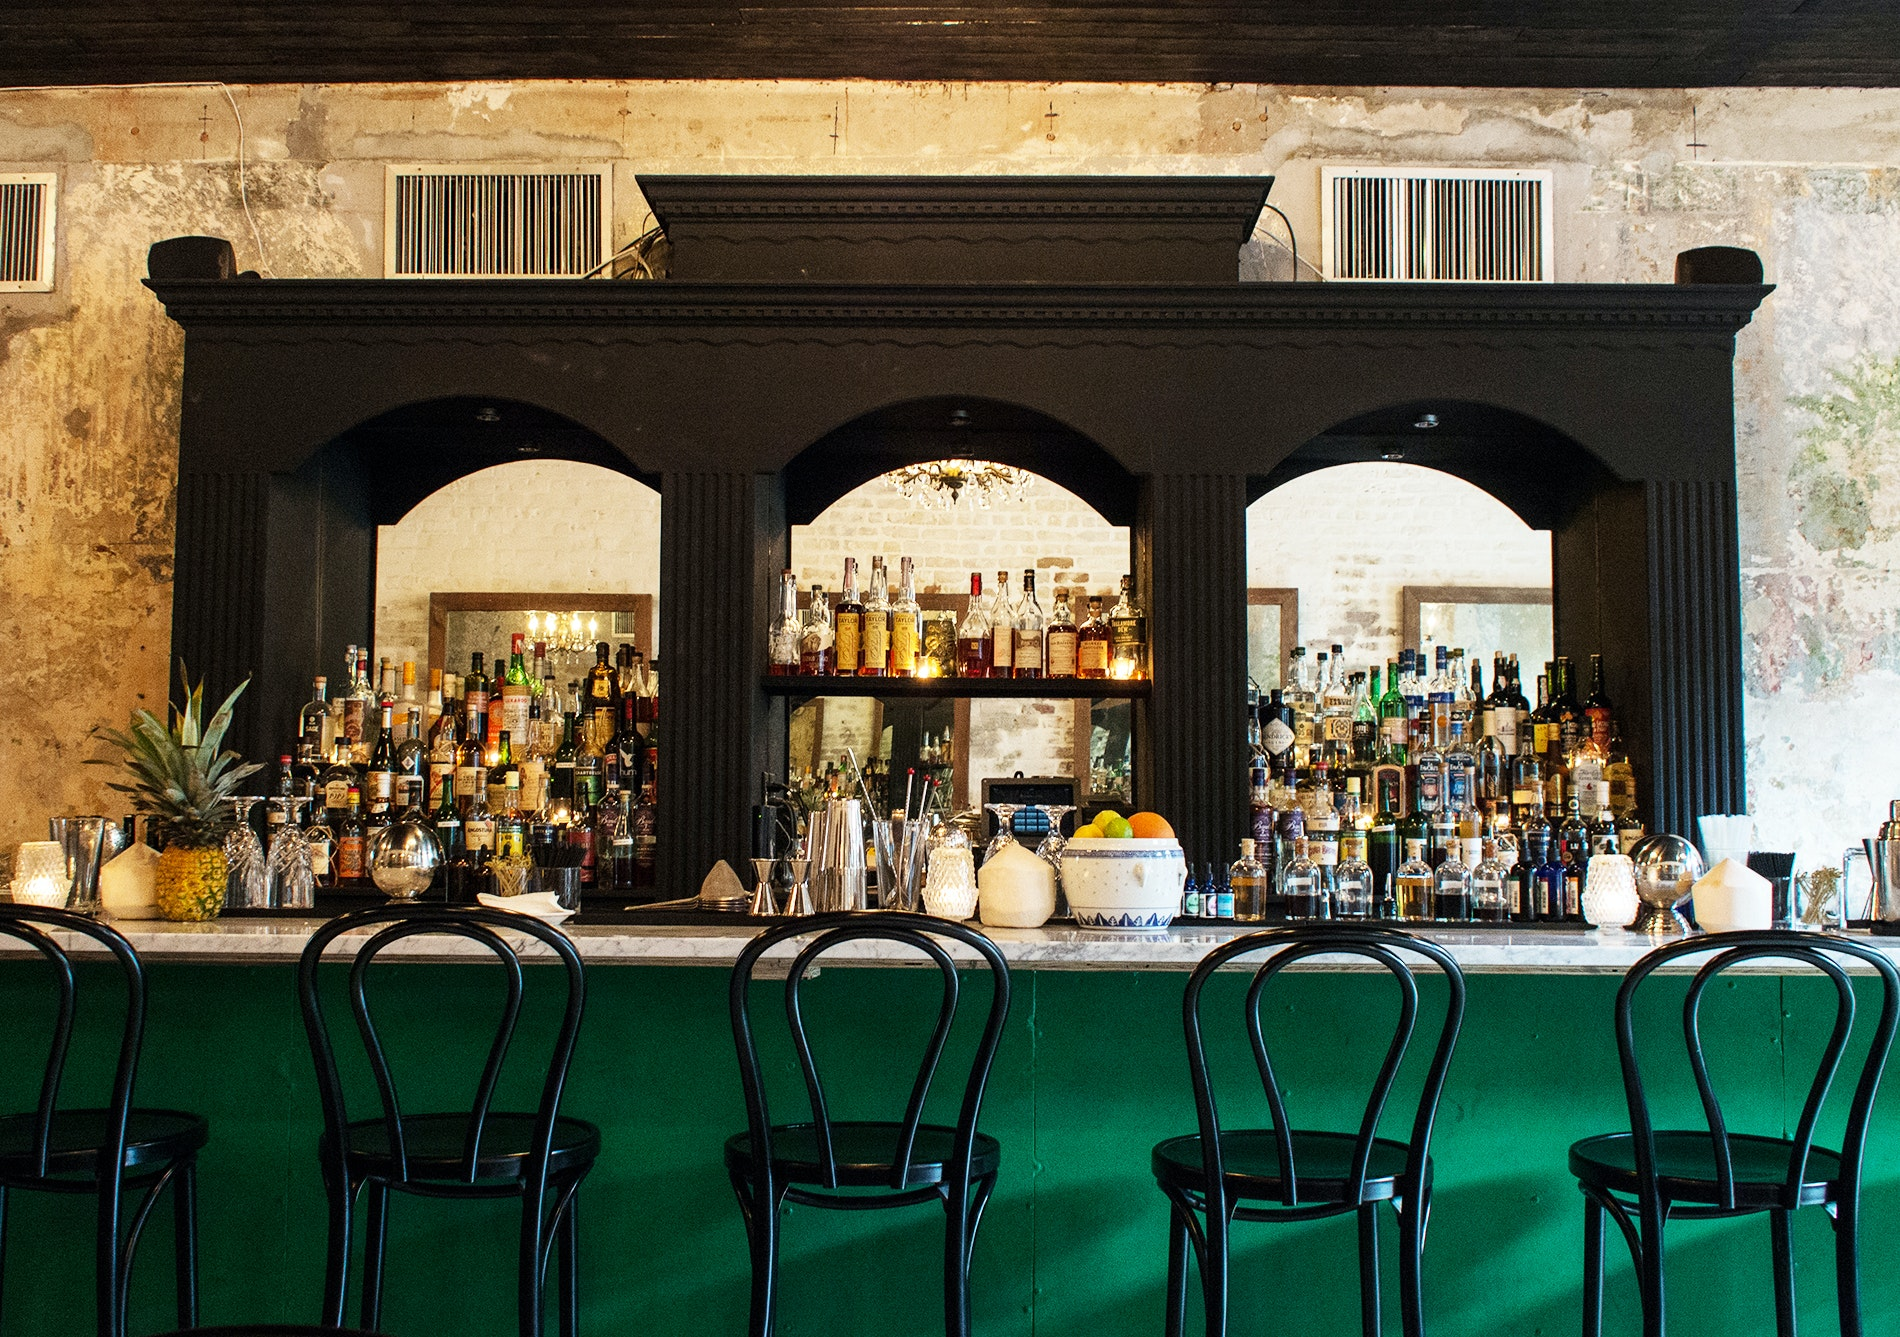 Cane and Table is chef Justin Devillier's go-to bar for rum cocktails and tropical-inspired drinks.